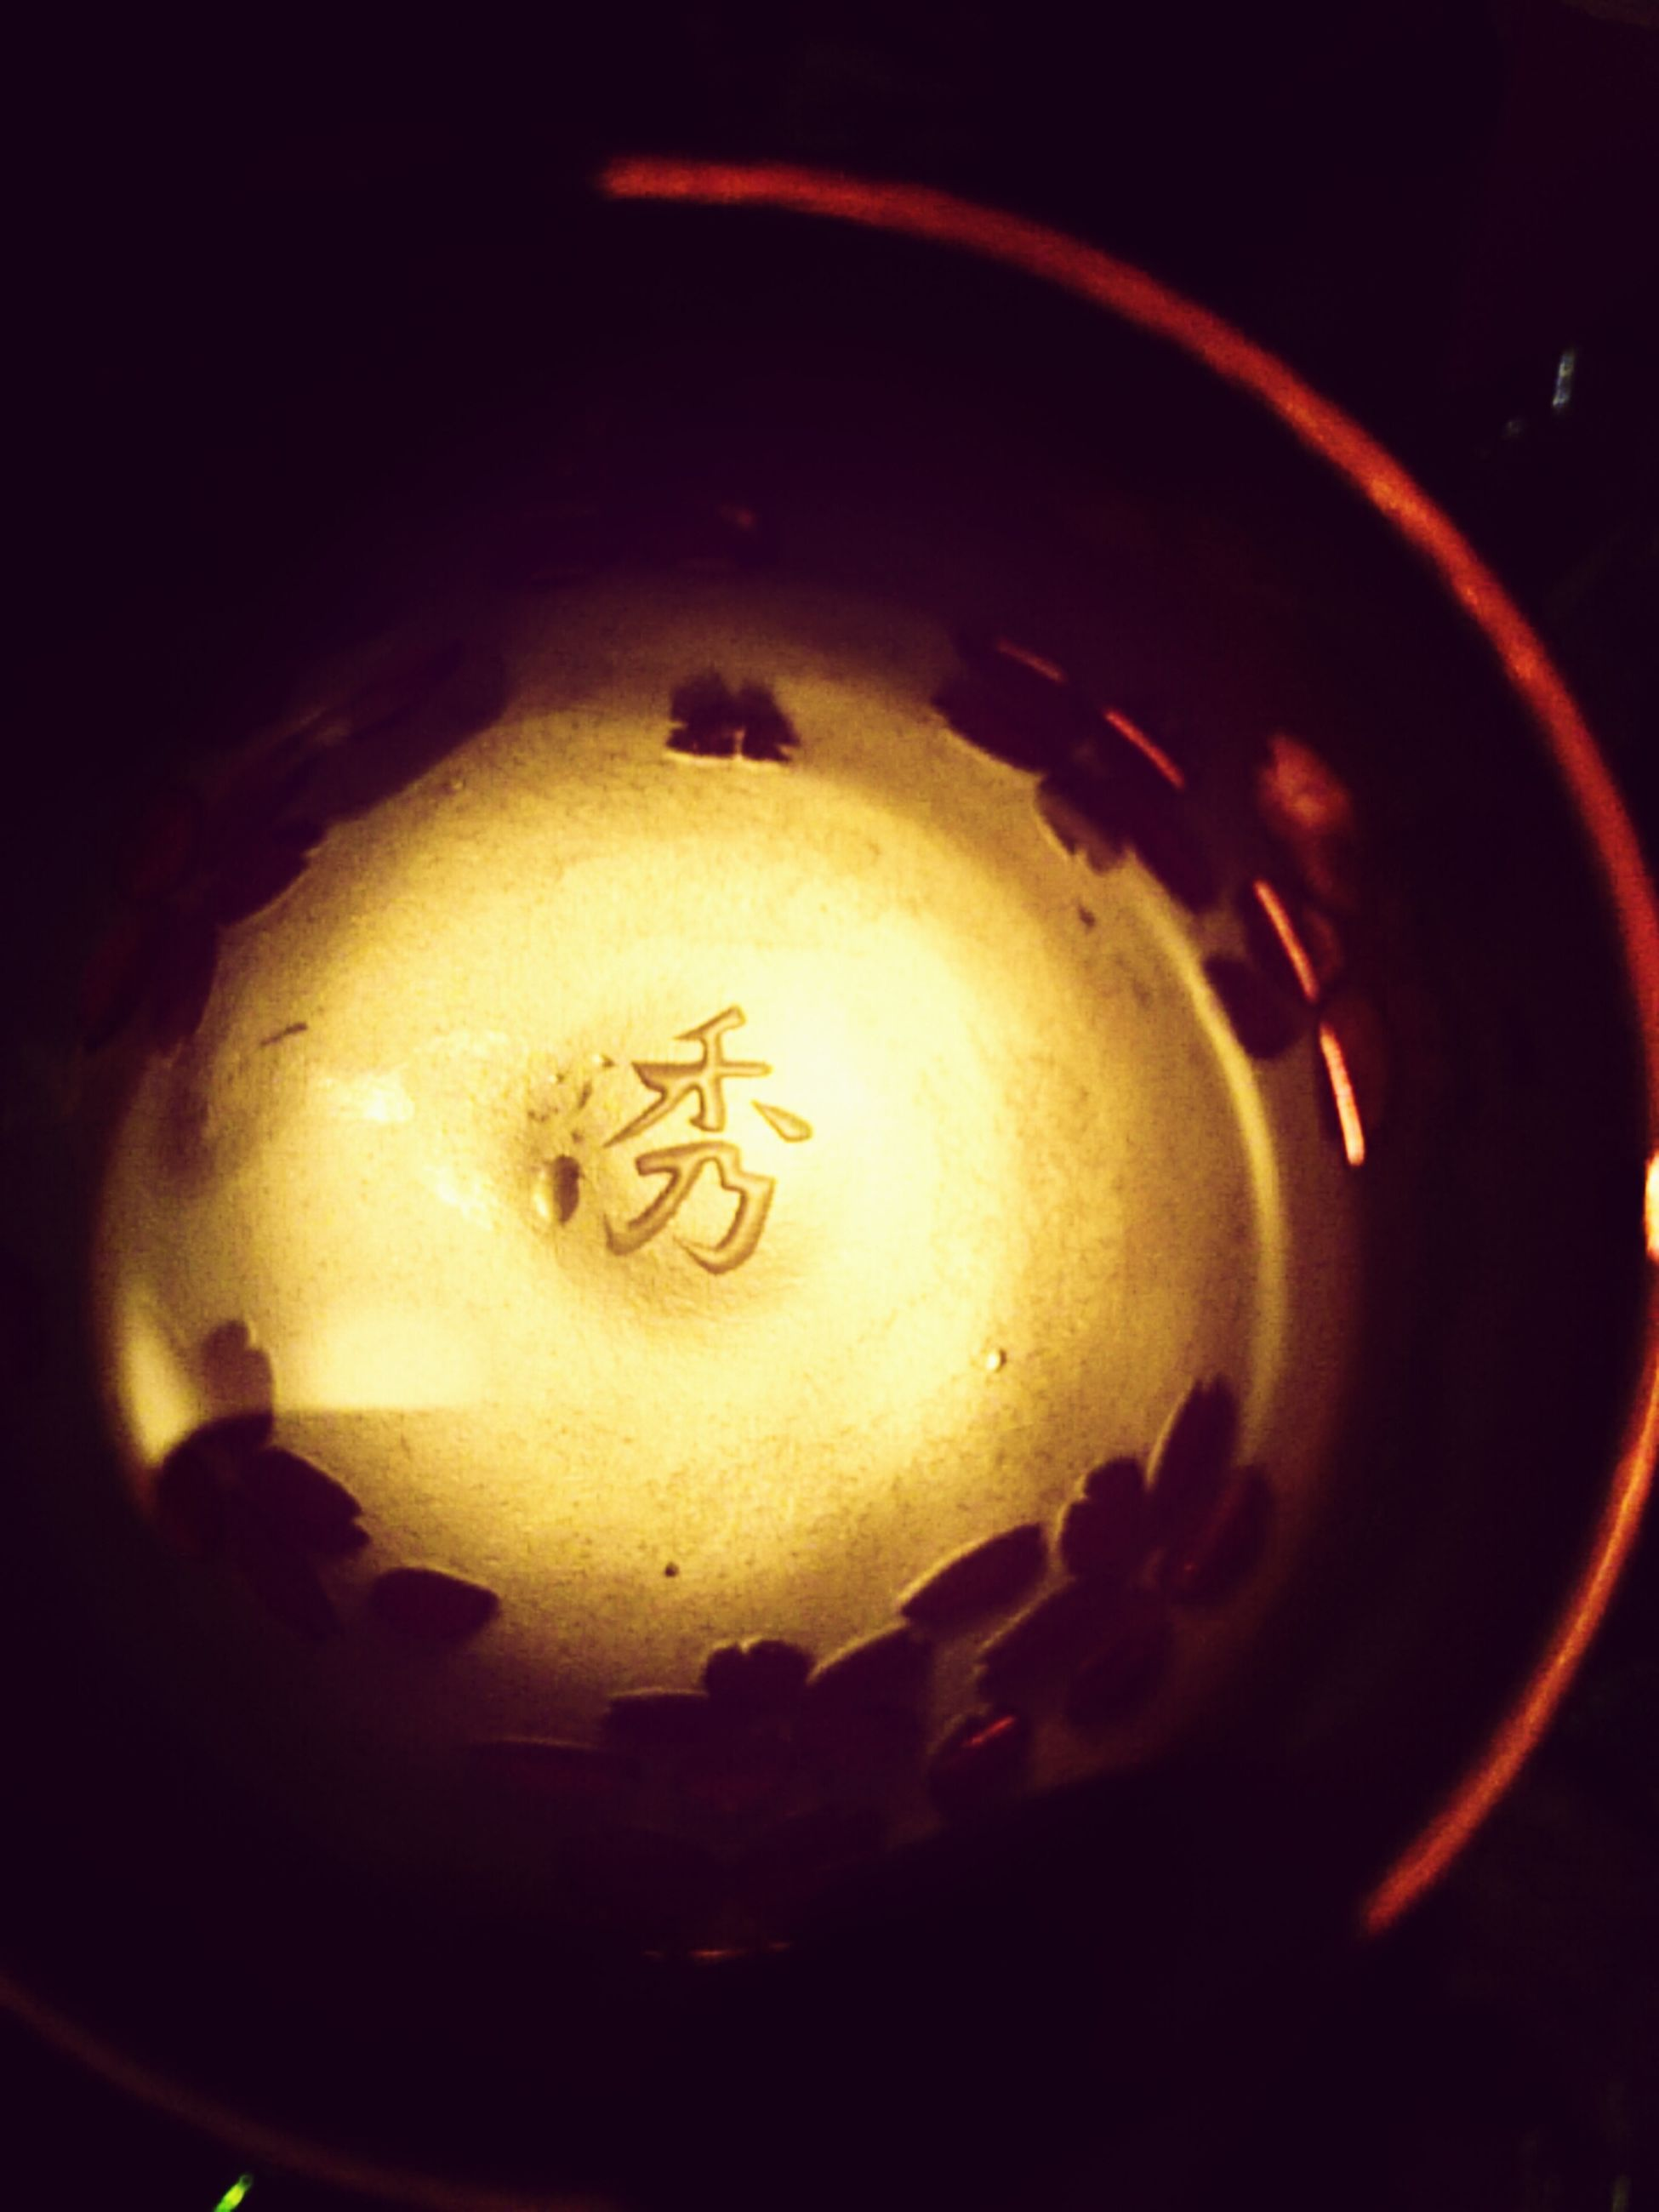 indoors, illuminated, close-up, lighting equipment, burning, glowing, still life, candle, flame, lit, heat - temperature, electricity, light - natural phenomenon, art, creativity, single object, art and craft, no people, circle, fire - natural phenomenon